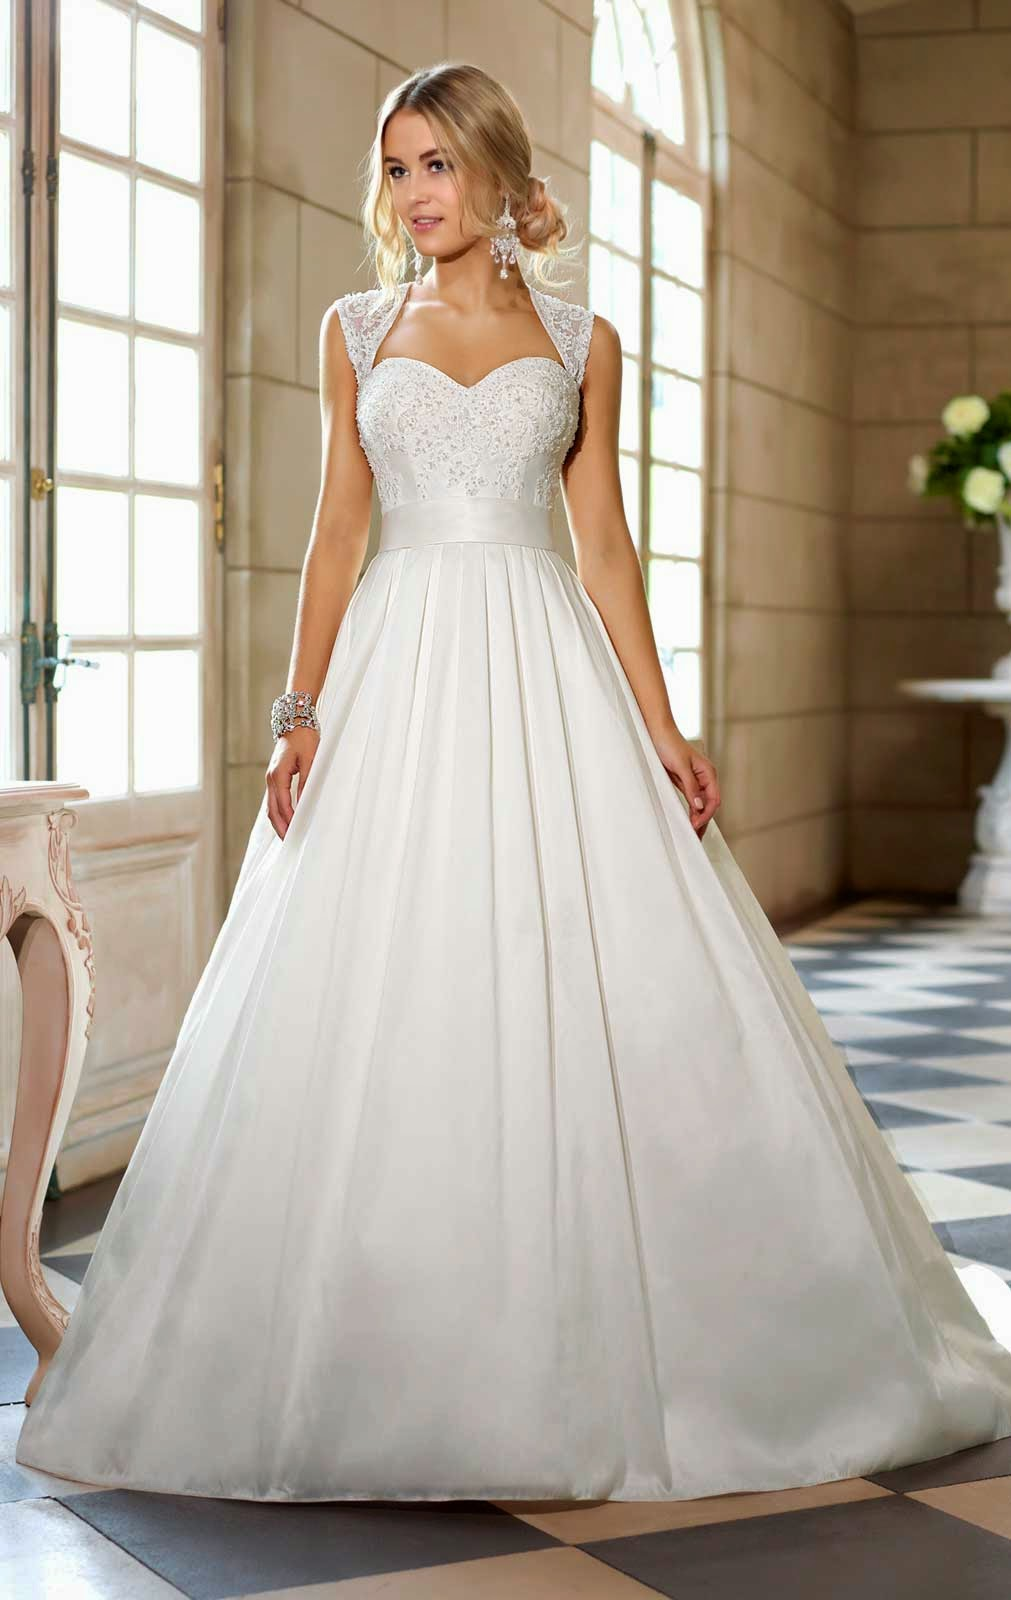 White Wedding Dresses with Bling Photos HD Concepts Ideas